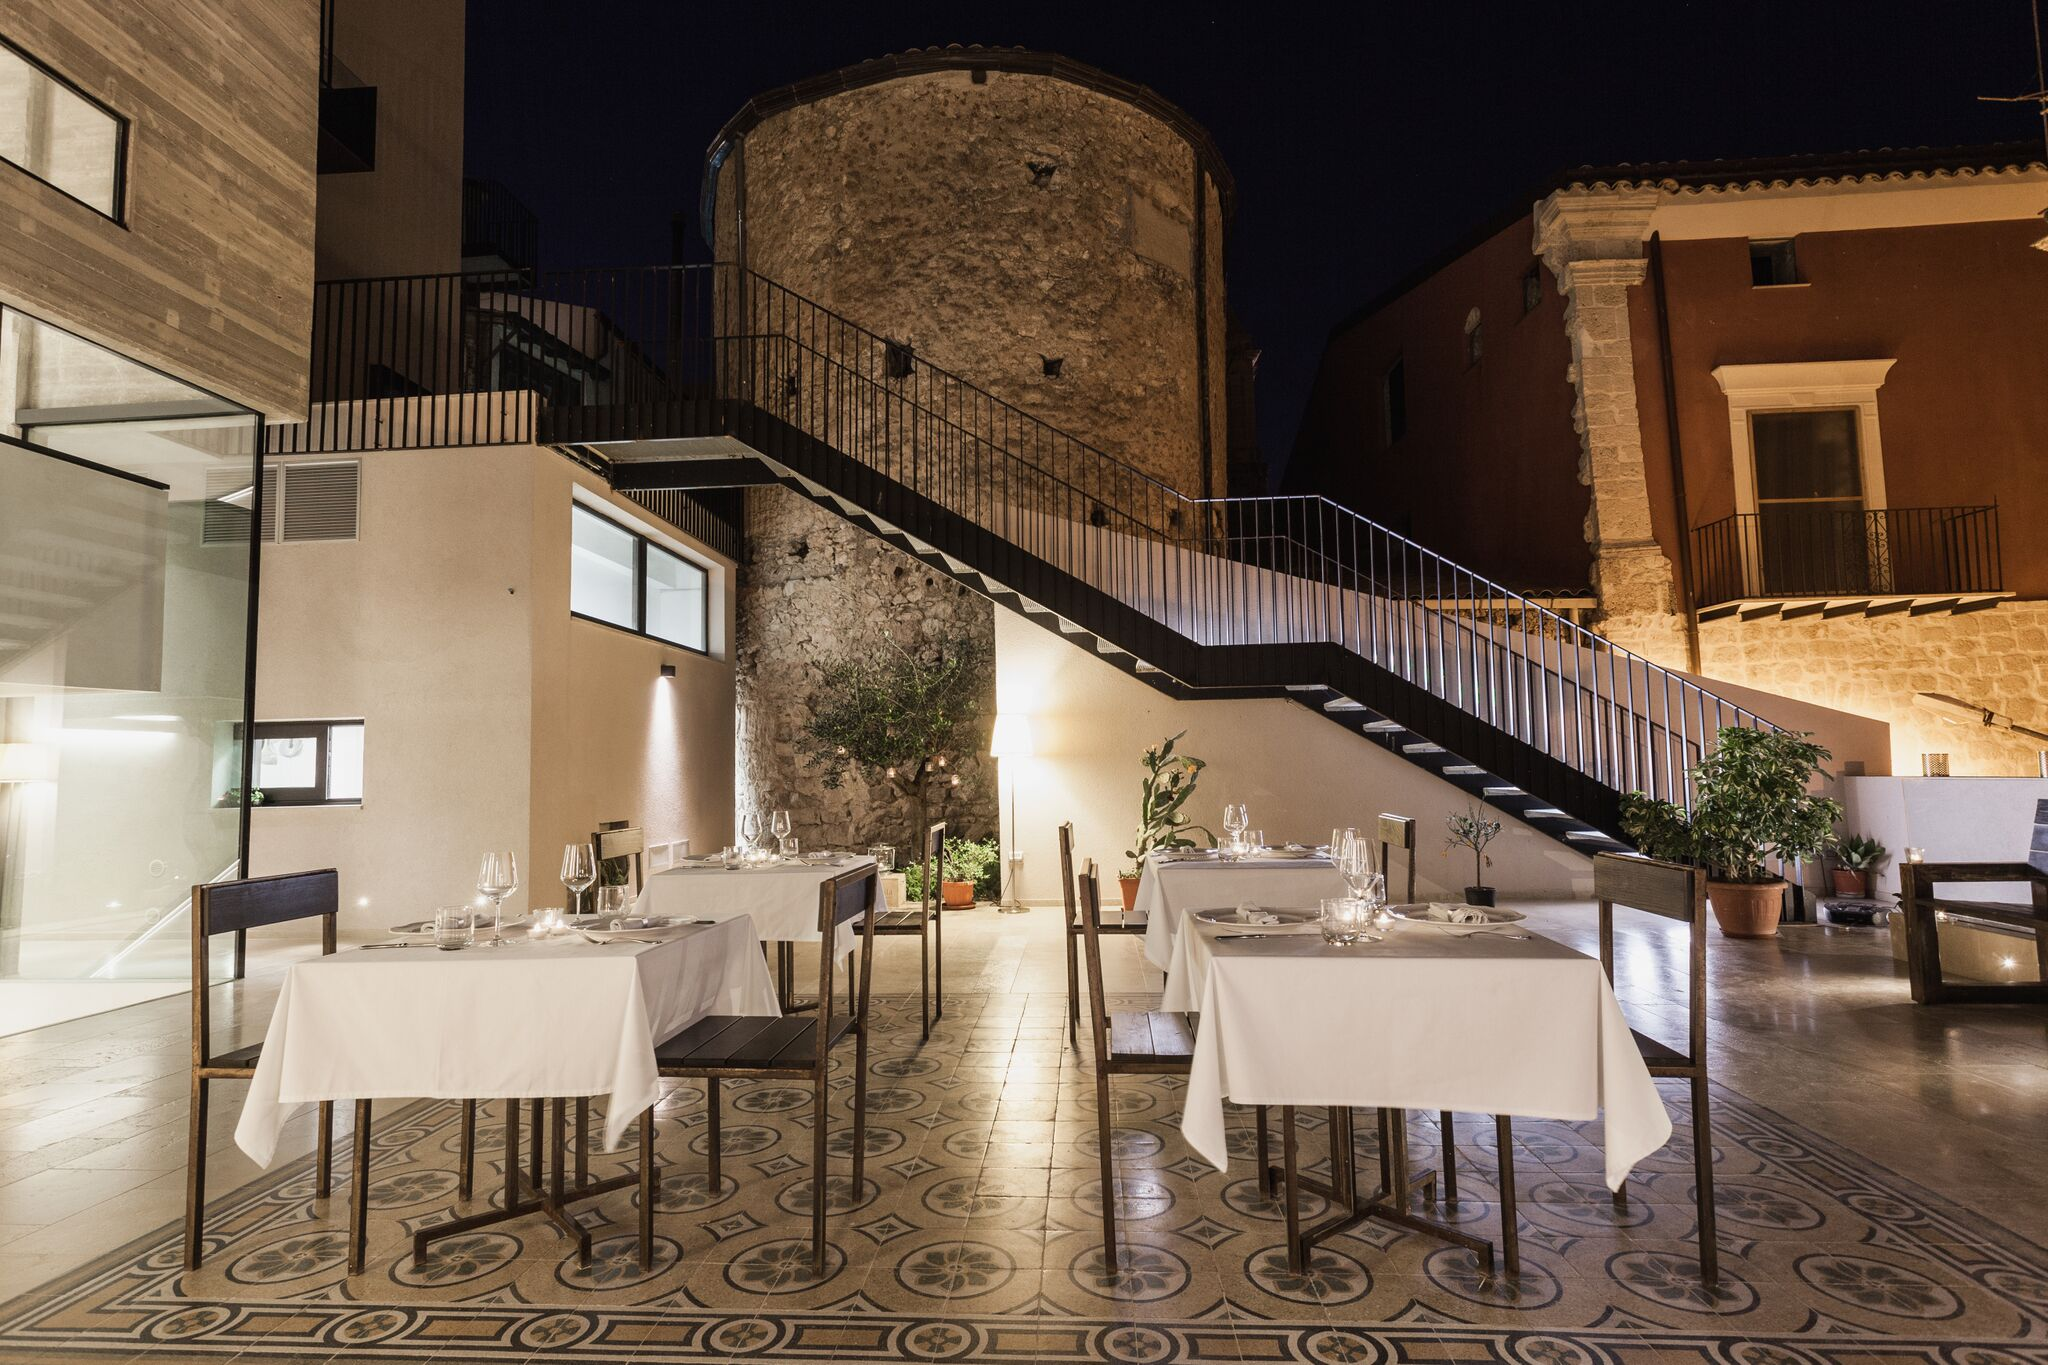 A new hotel in the heart of authentic sicily between for Design hotel sicilia